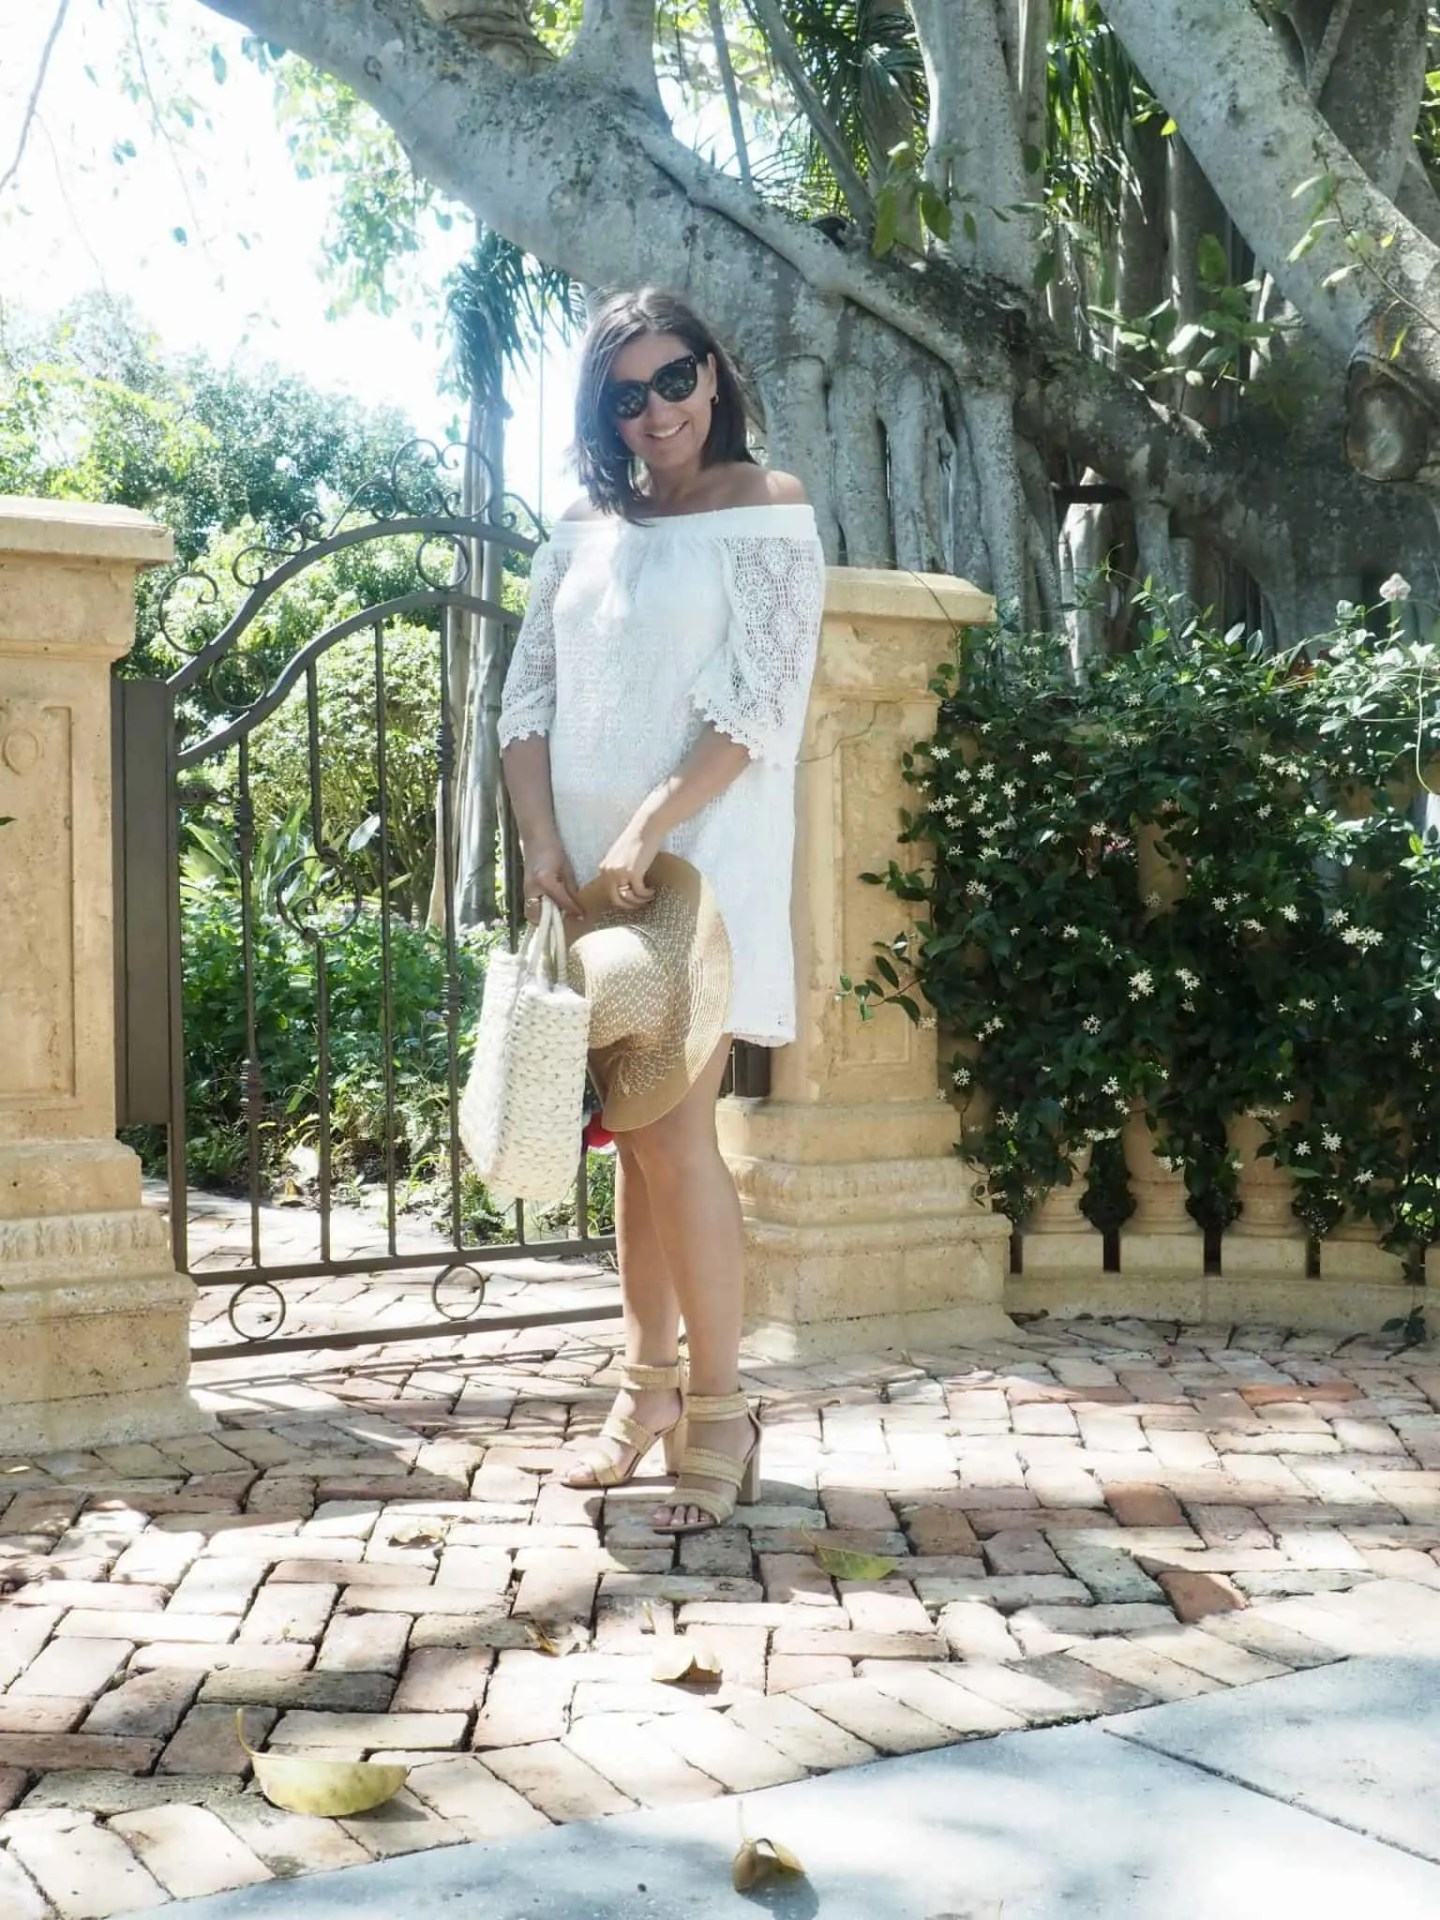 My Favourite Lace Off The Shoulder White Dress For Summer